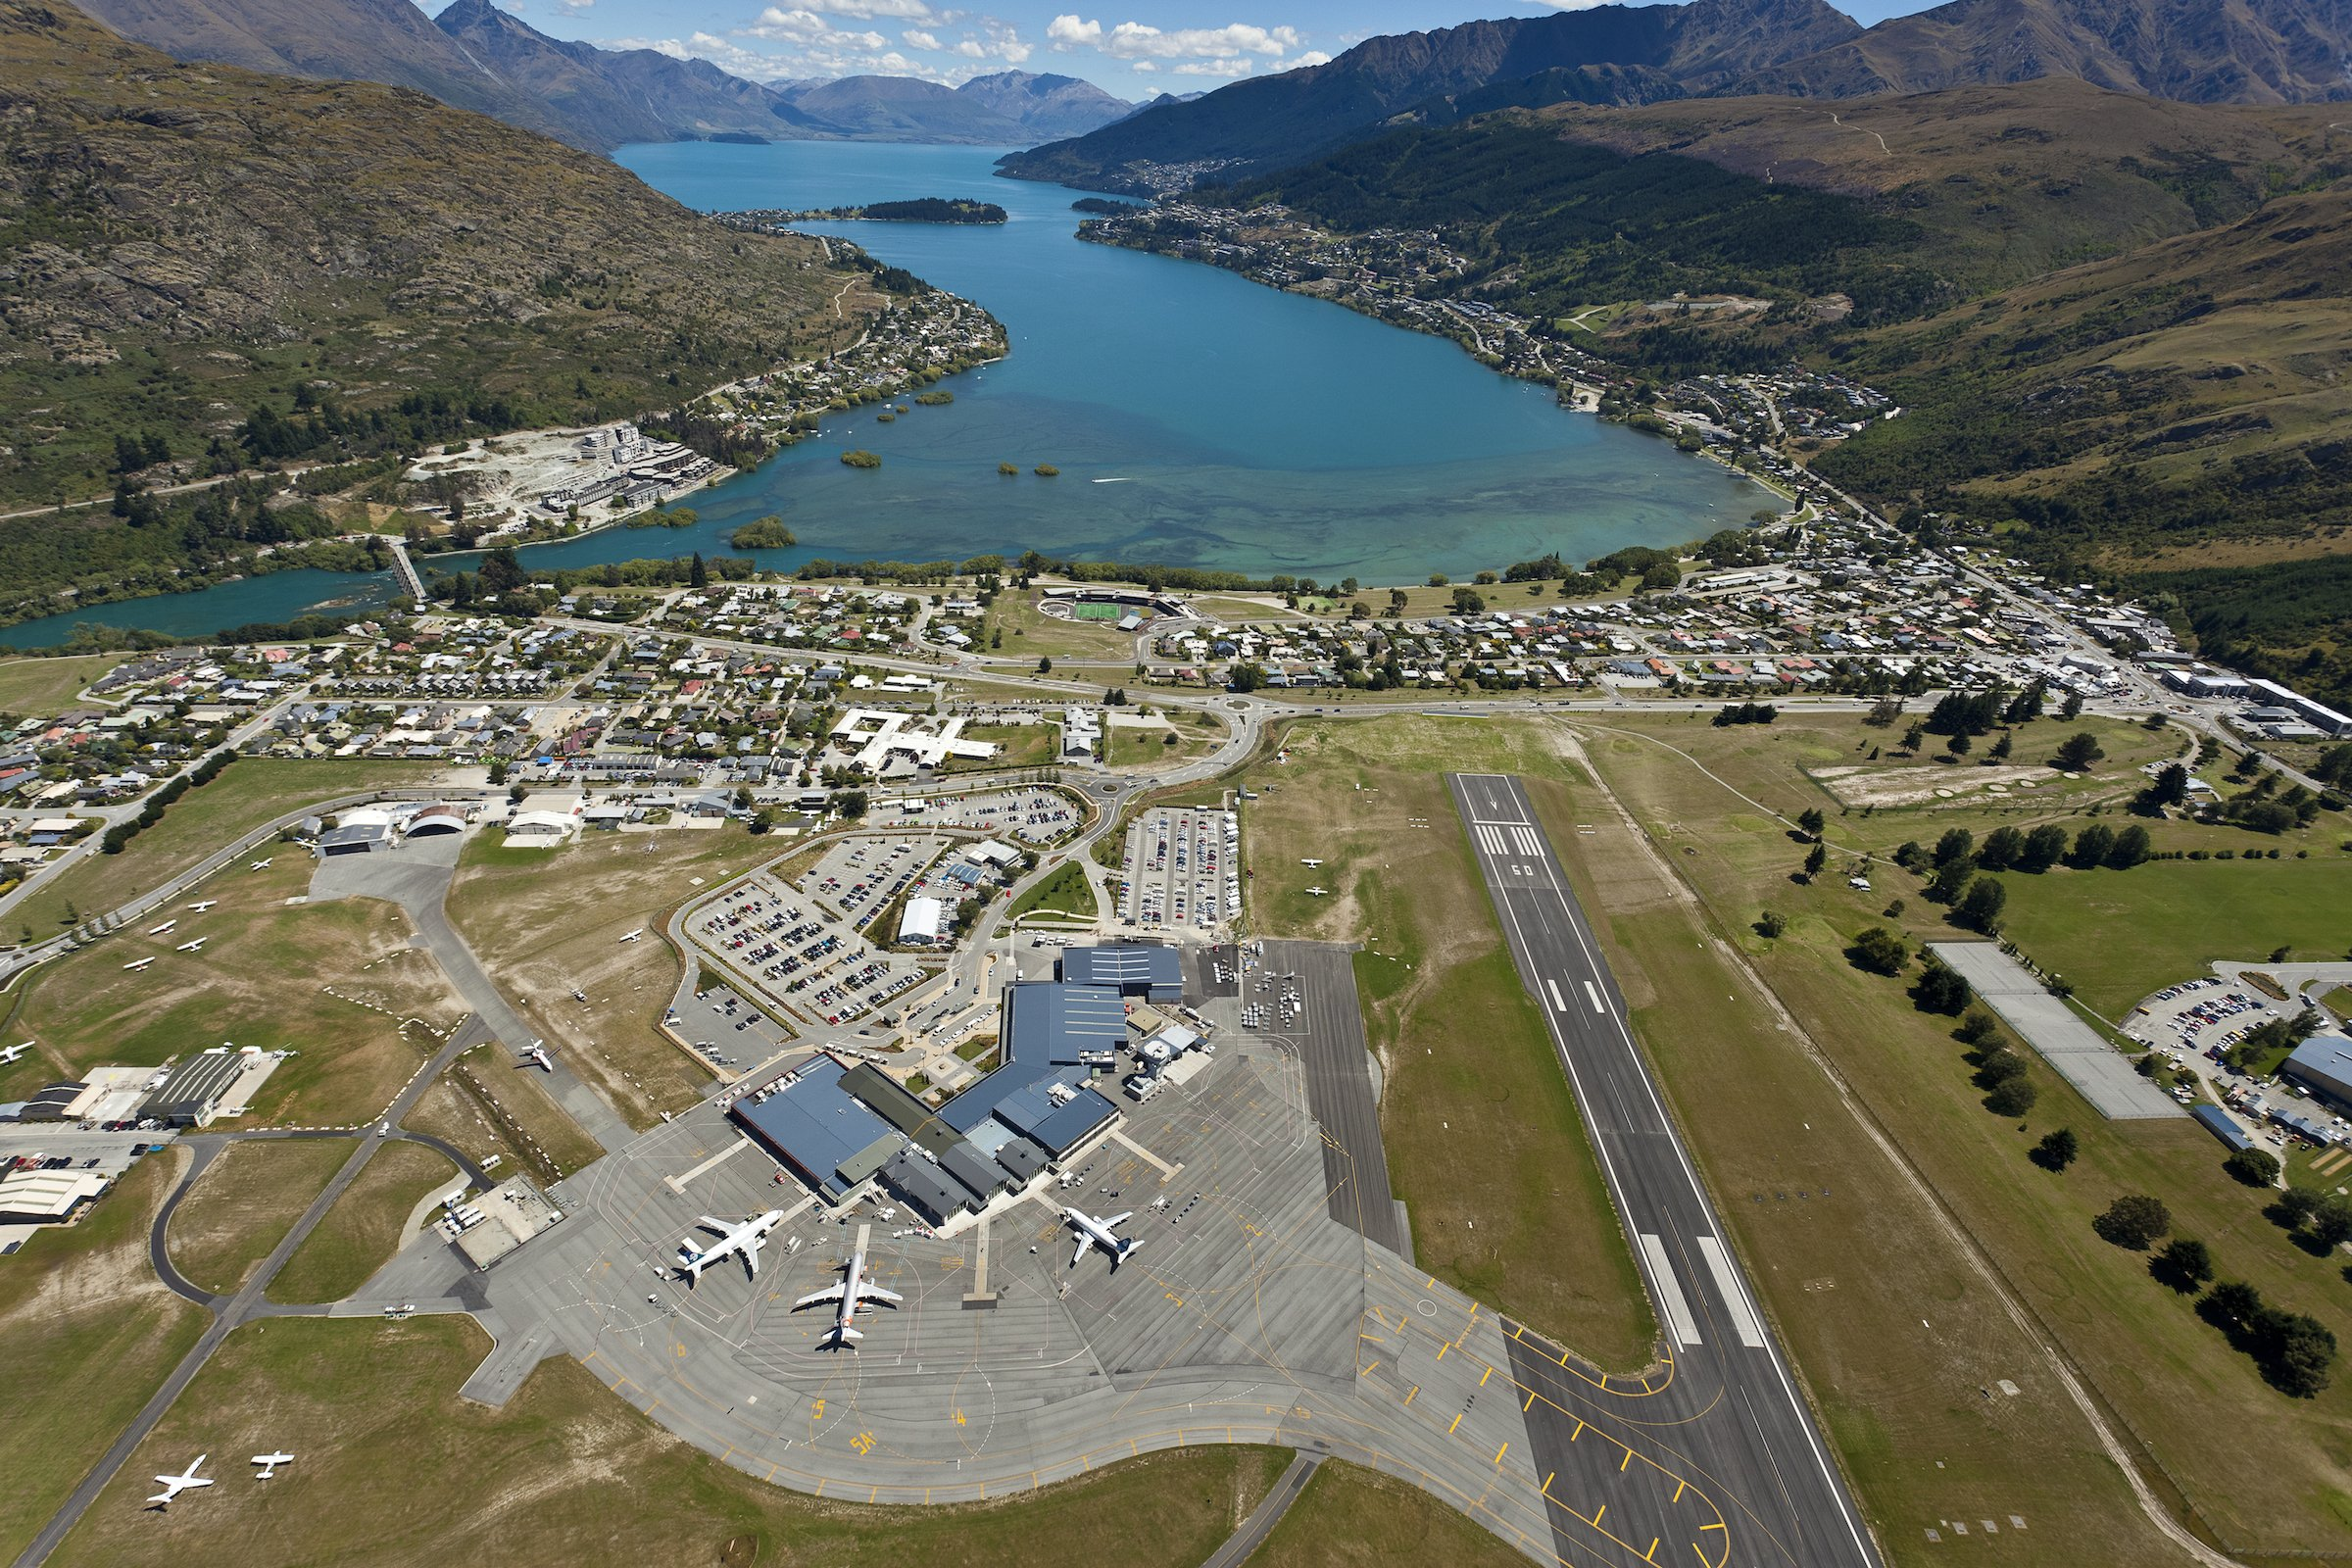 1. Aéroport Queenstown, Nouvelle Zélande